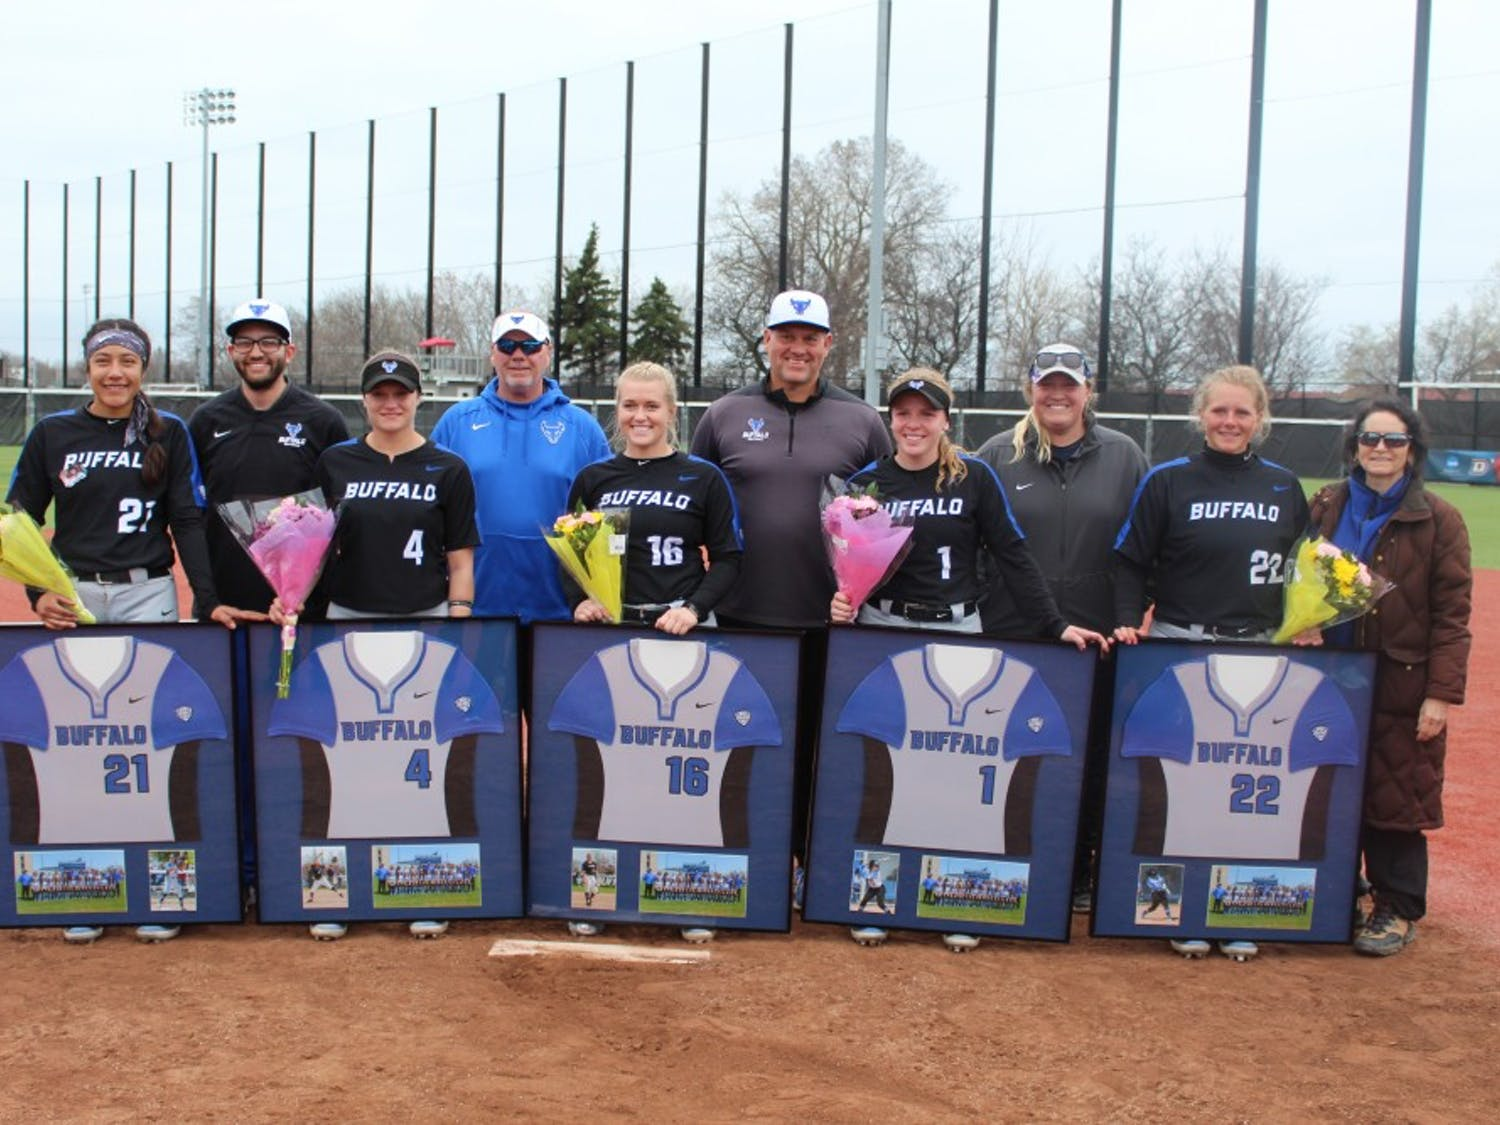 Alysaa Cuevas, Lace Smith, Ally Power, Alissa Karjel and Catrell Robertson stand with members of the UB softball coaching staff and administrators following the end of their doubleheader on Saturday.